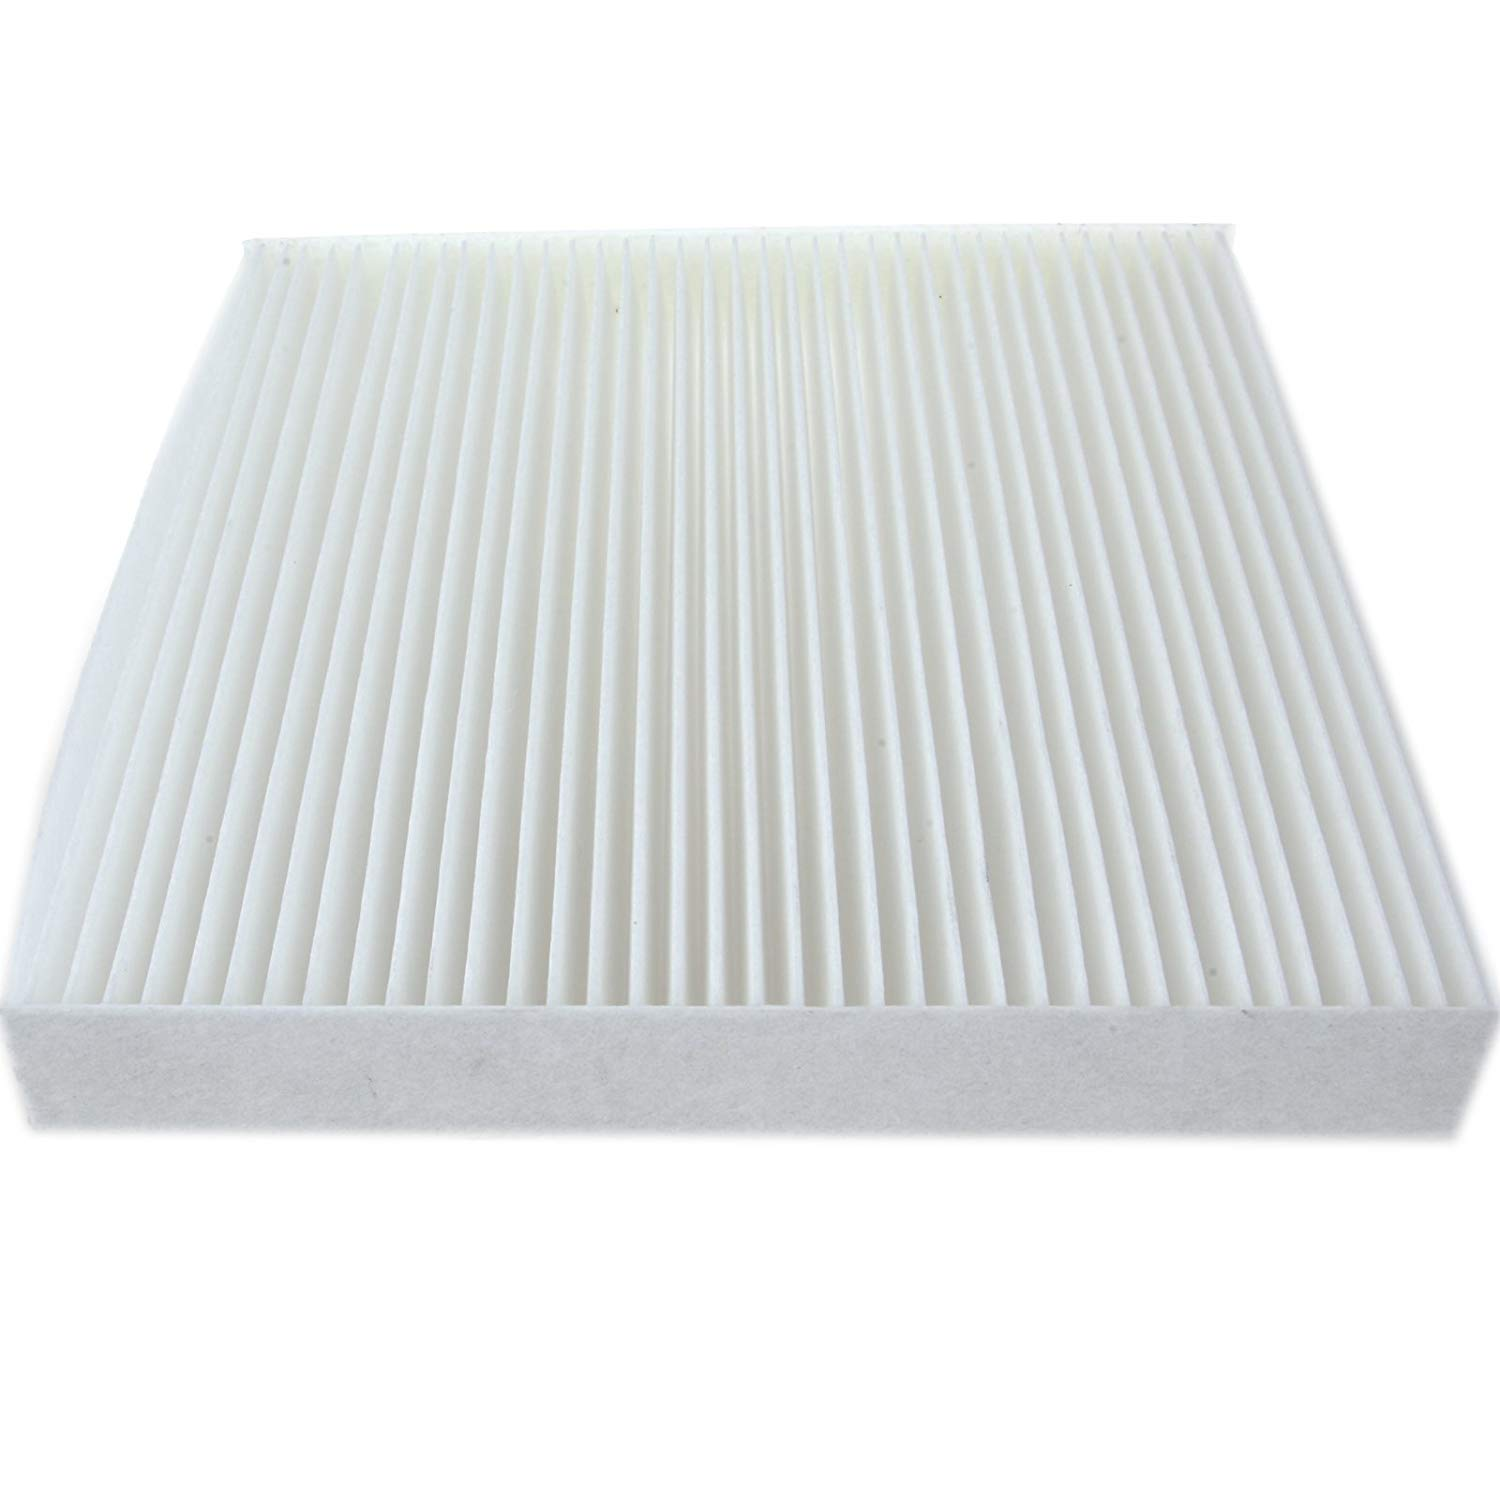 Five Star Cabin Air Filter Engine Filter For 2003-2015